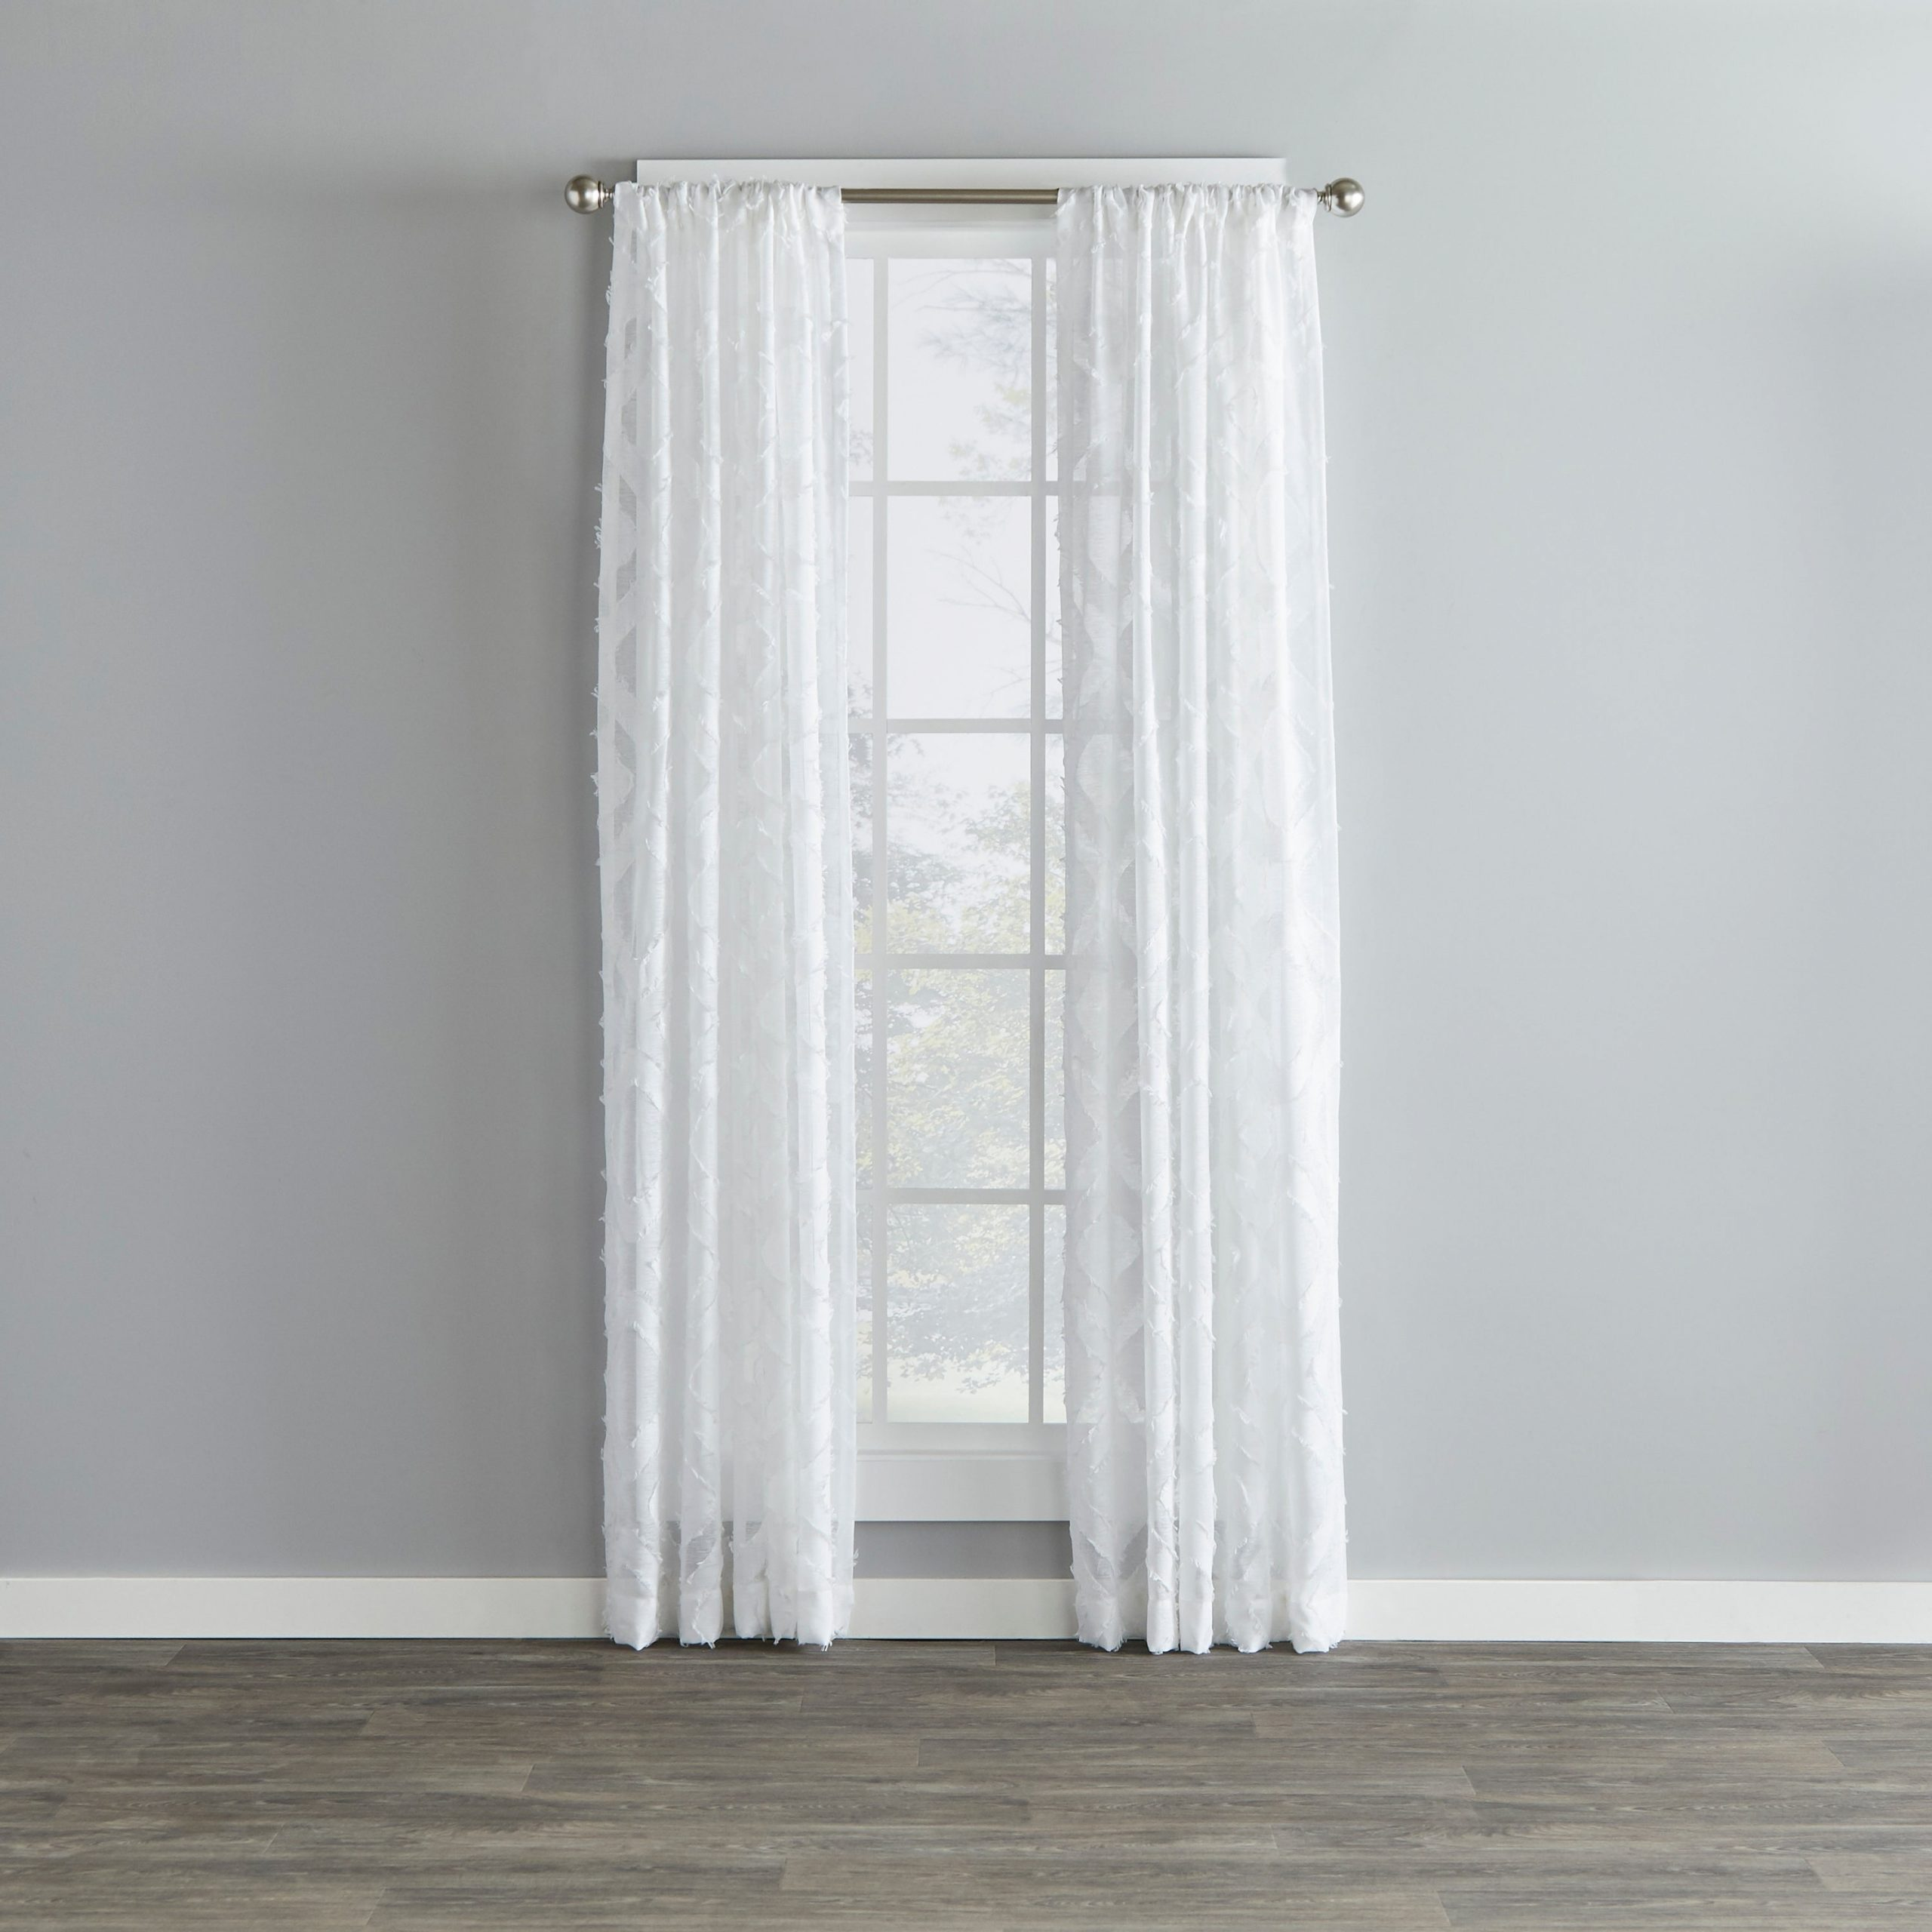 Details About Porch & Den Northgate Skl Home Edge 63 Inch Panel White Pertaining To Famous Porch & Den Park Point Blush 24 Inch Tier Pairs (View 19 of 20)